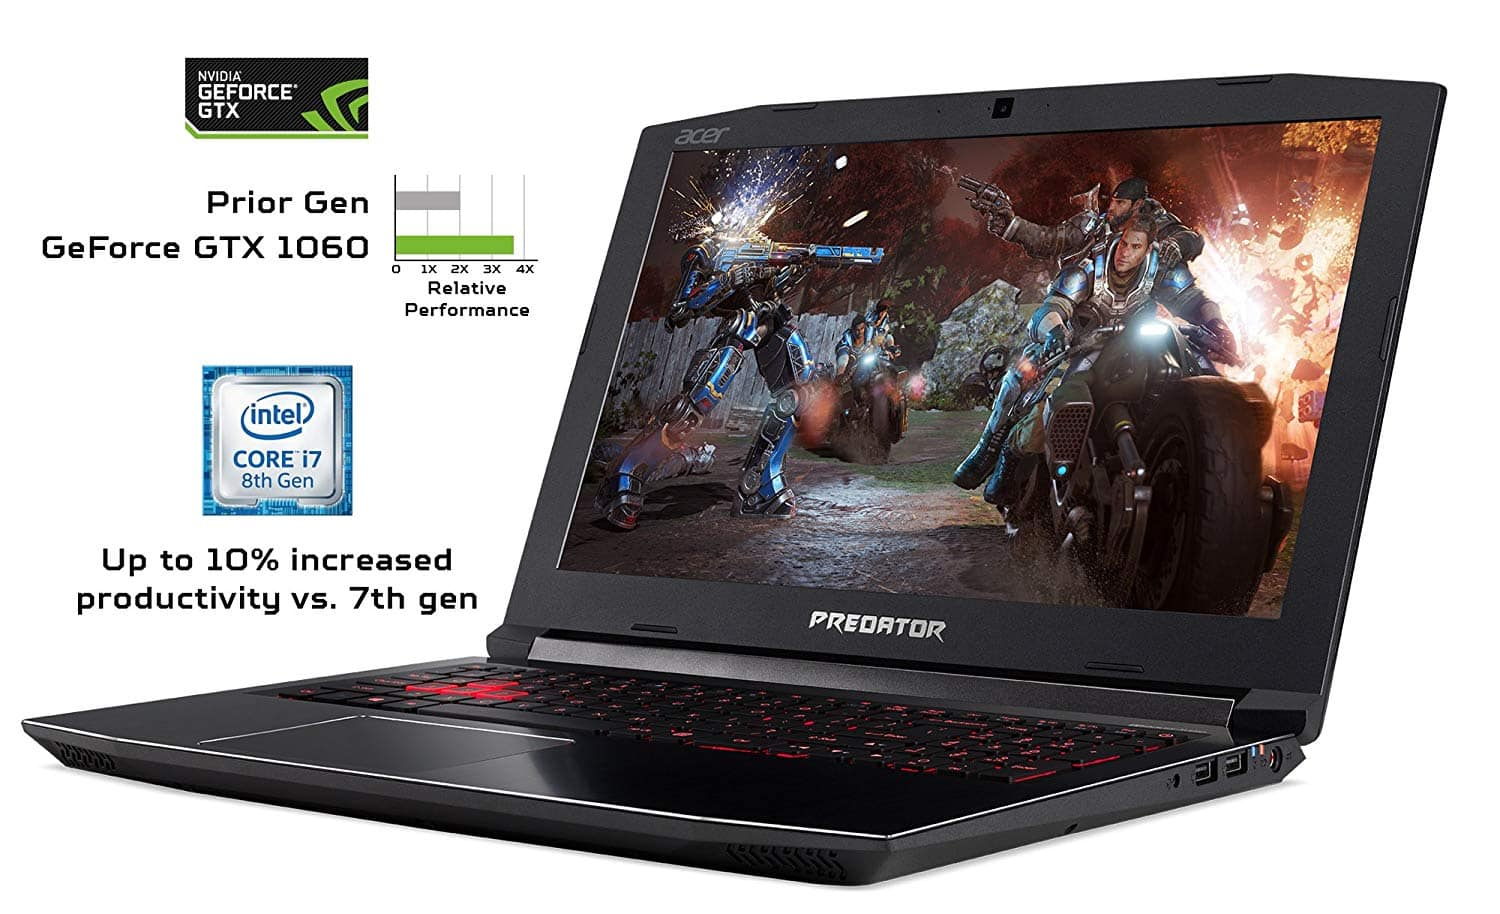 Acer Predator Helios 300 Gaming Laptop $899 for prime members.